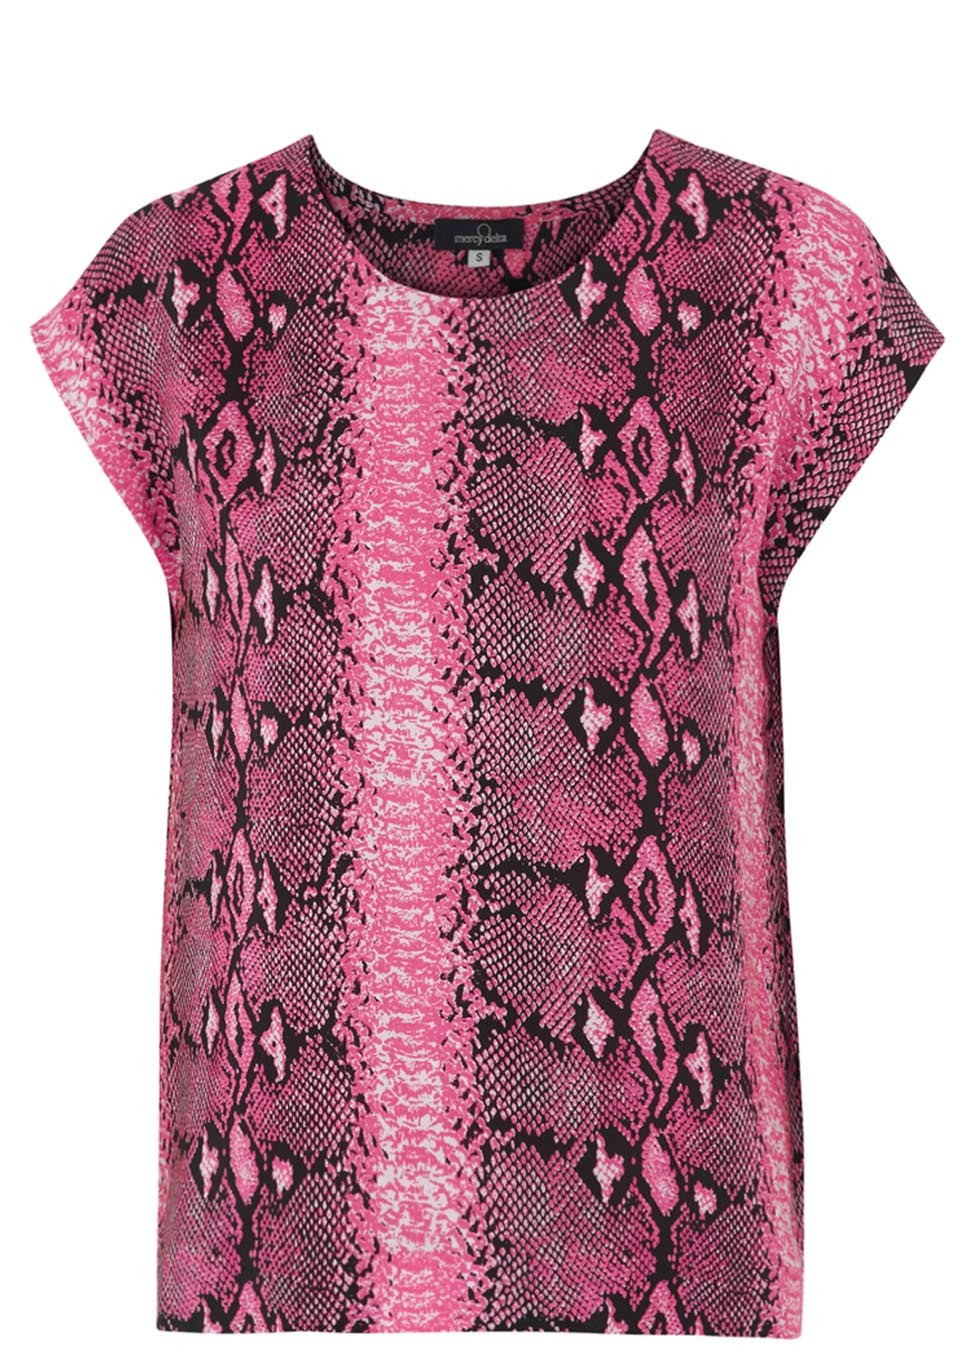 Blair Pink Print Silk Top Size - neckline: round neck; sleeve style: capped; style: t-shirt; secondary colour: aubergine; occasions: casual, creative work; length: standard; fibres: silk - 100%; fit: straight cut; sleeve length: short sleeve; texture group: silky - light; pattern type: fabric; pattern size: standard; pattern: animal print; predominant colour: dusky pink; season: s/s 2014